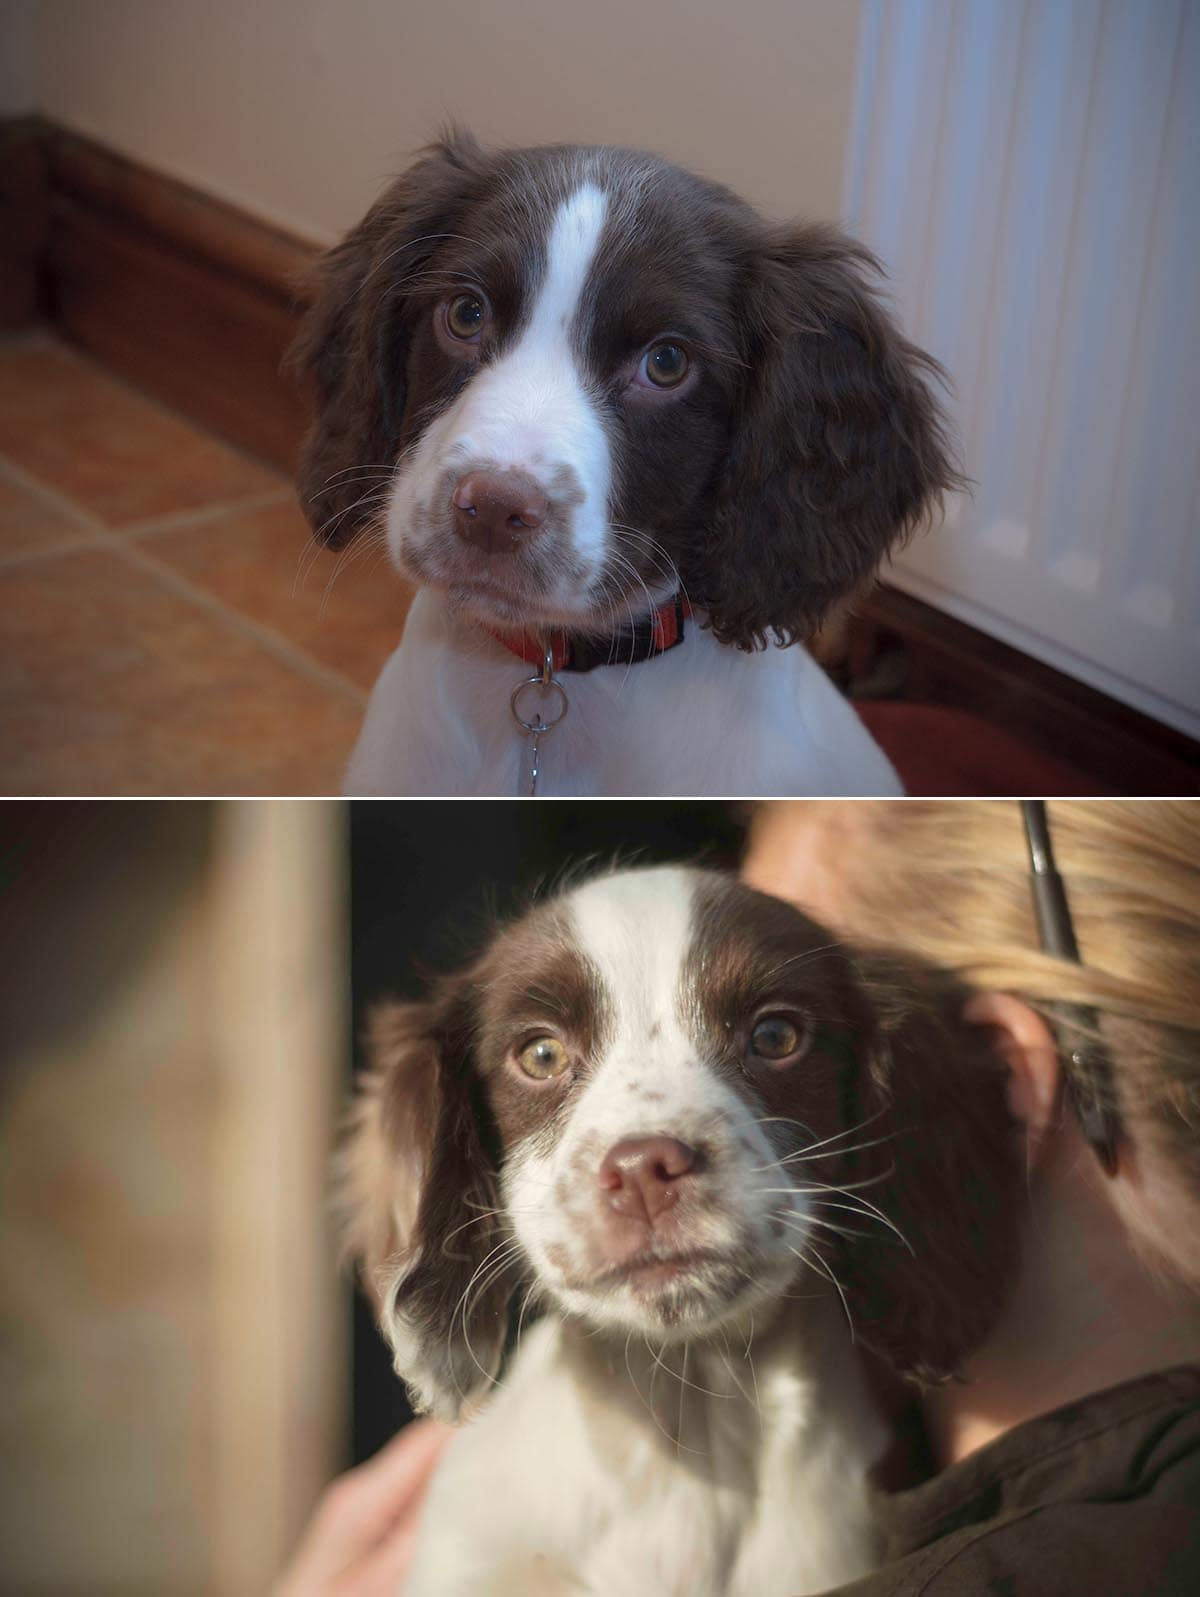 Coping-with-loss-dog-Springer-Puppies